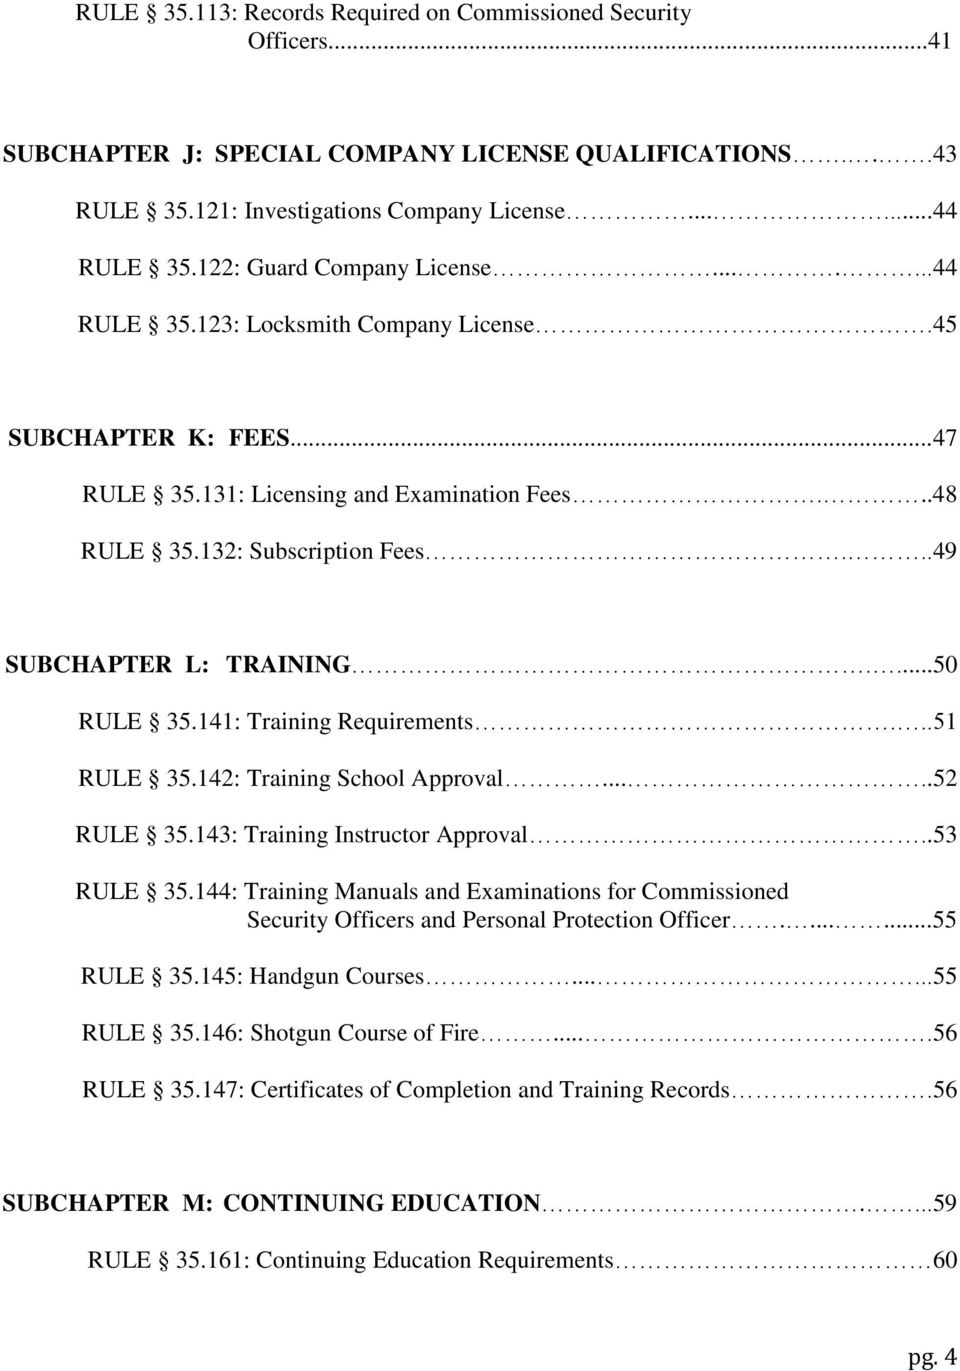 ..49 SUBCHAPTER L: TRAINING....50 RULE 35.141: Training Requirements...51 RULE 35.142: Training School Approval.....52 RULE 35.143: Training Instructor Approval..53 RULE 35.